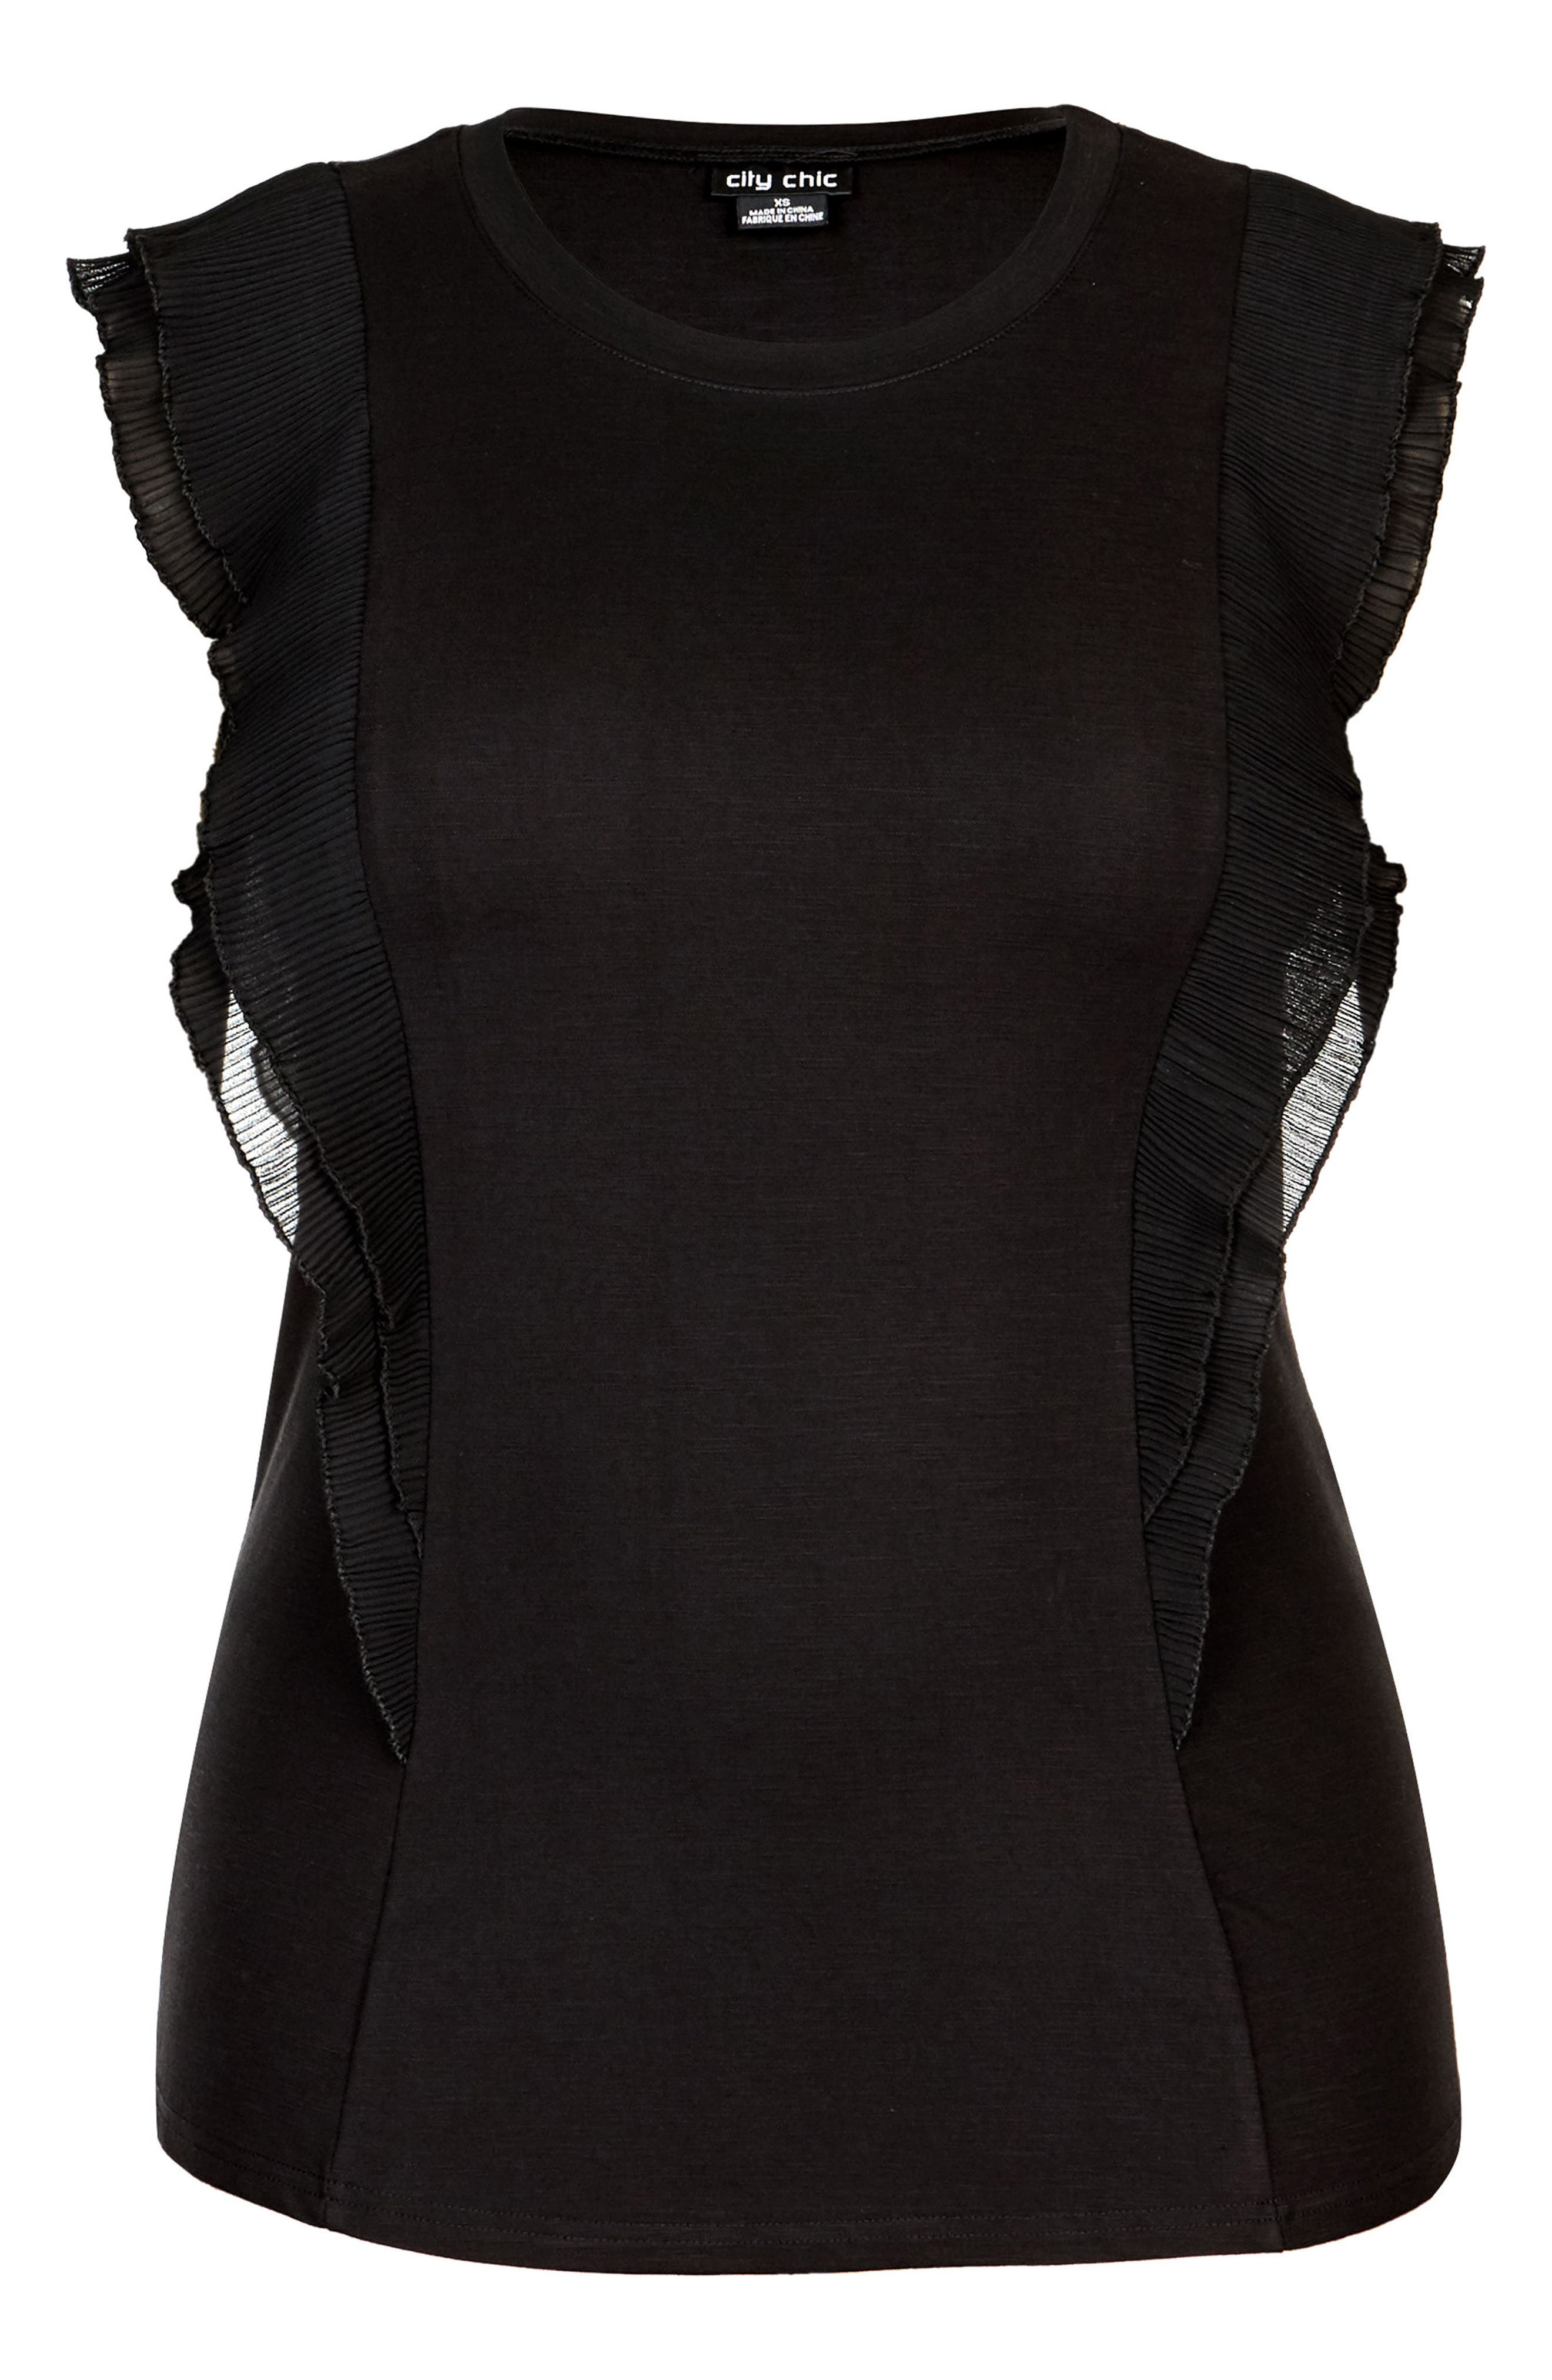 Chic Chic Aflutter Top,                             Alternate thumbnail 3, color,                             BLACK